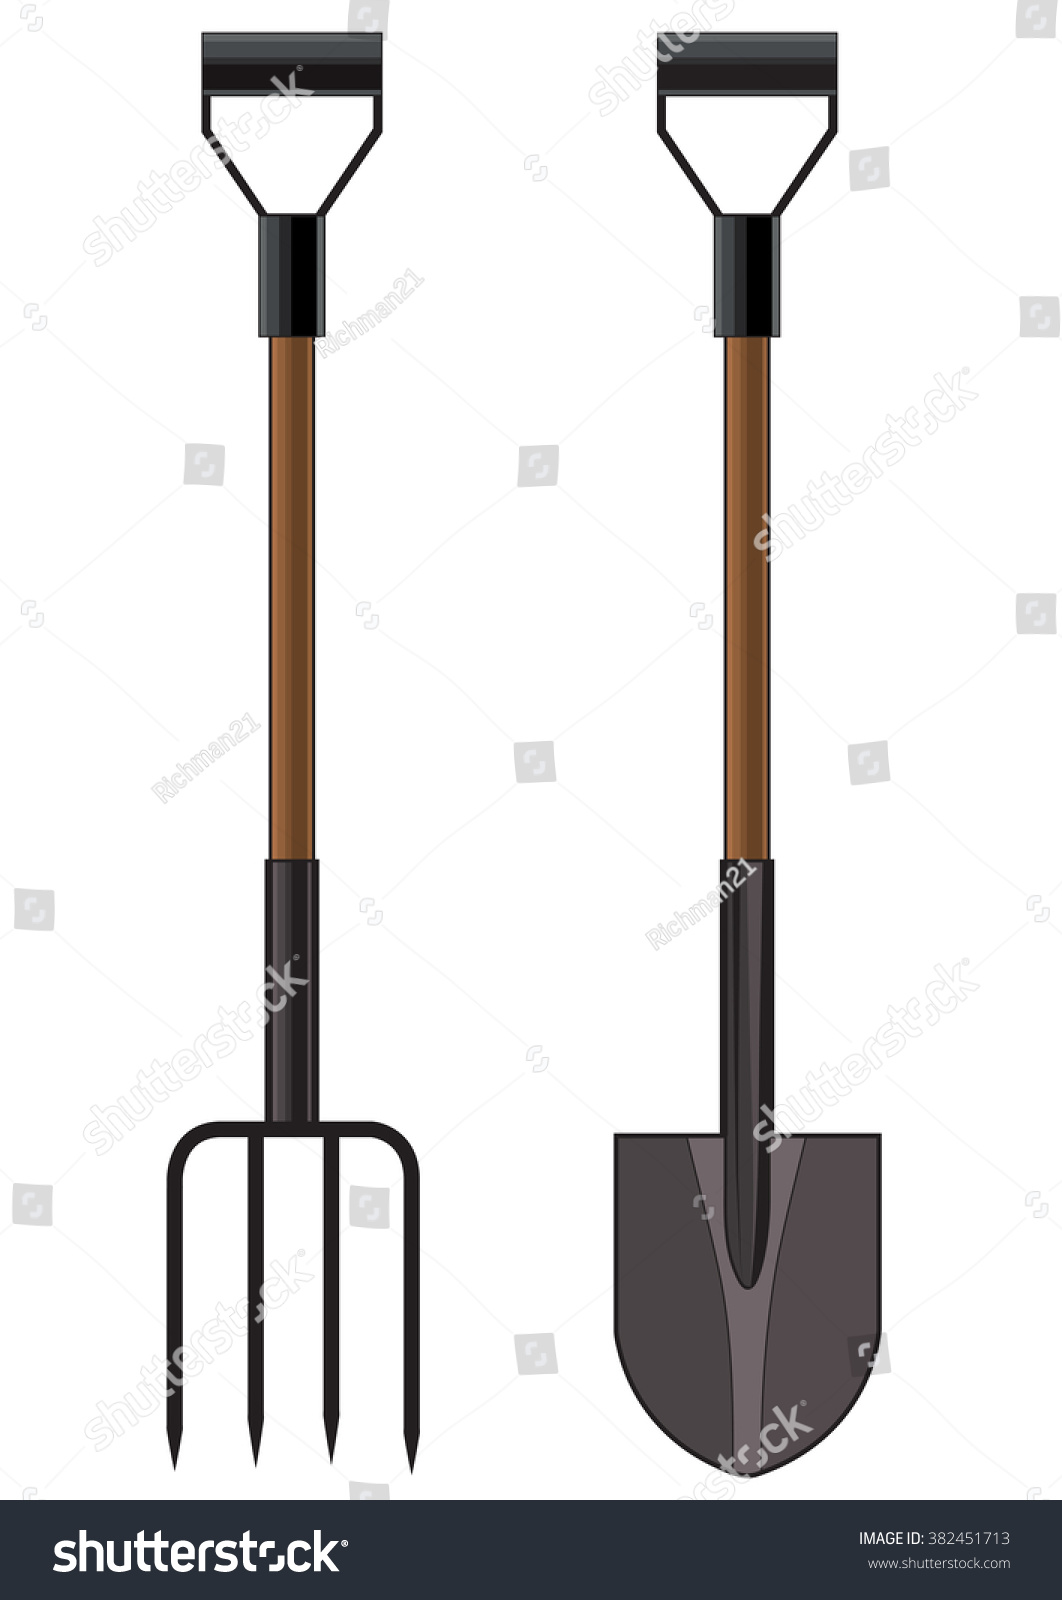 Vector Illustration Garden Pitchfork Shovel Stock Vector 382451713